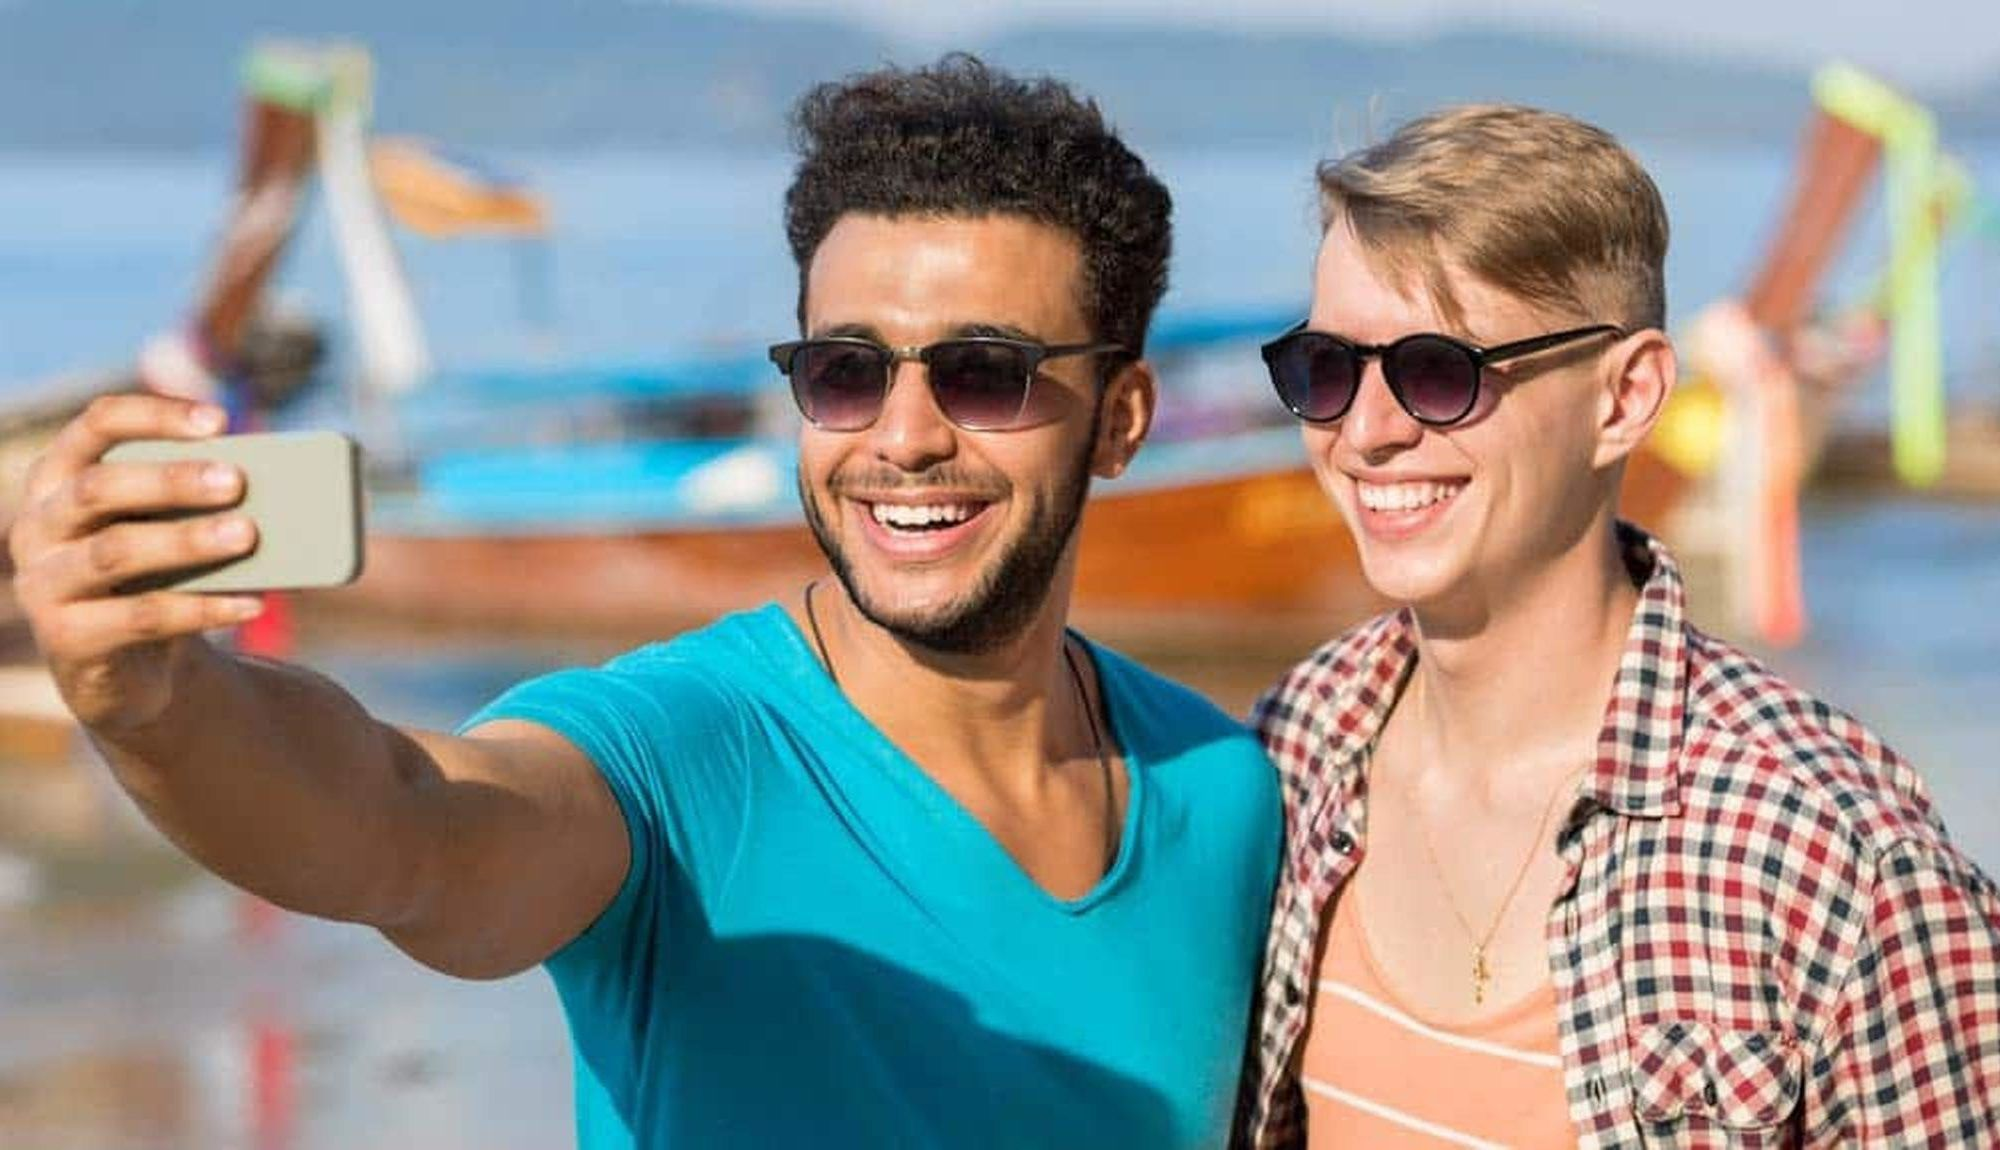 Latest free online dating sites for bikers